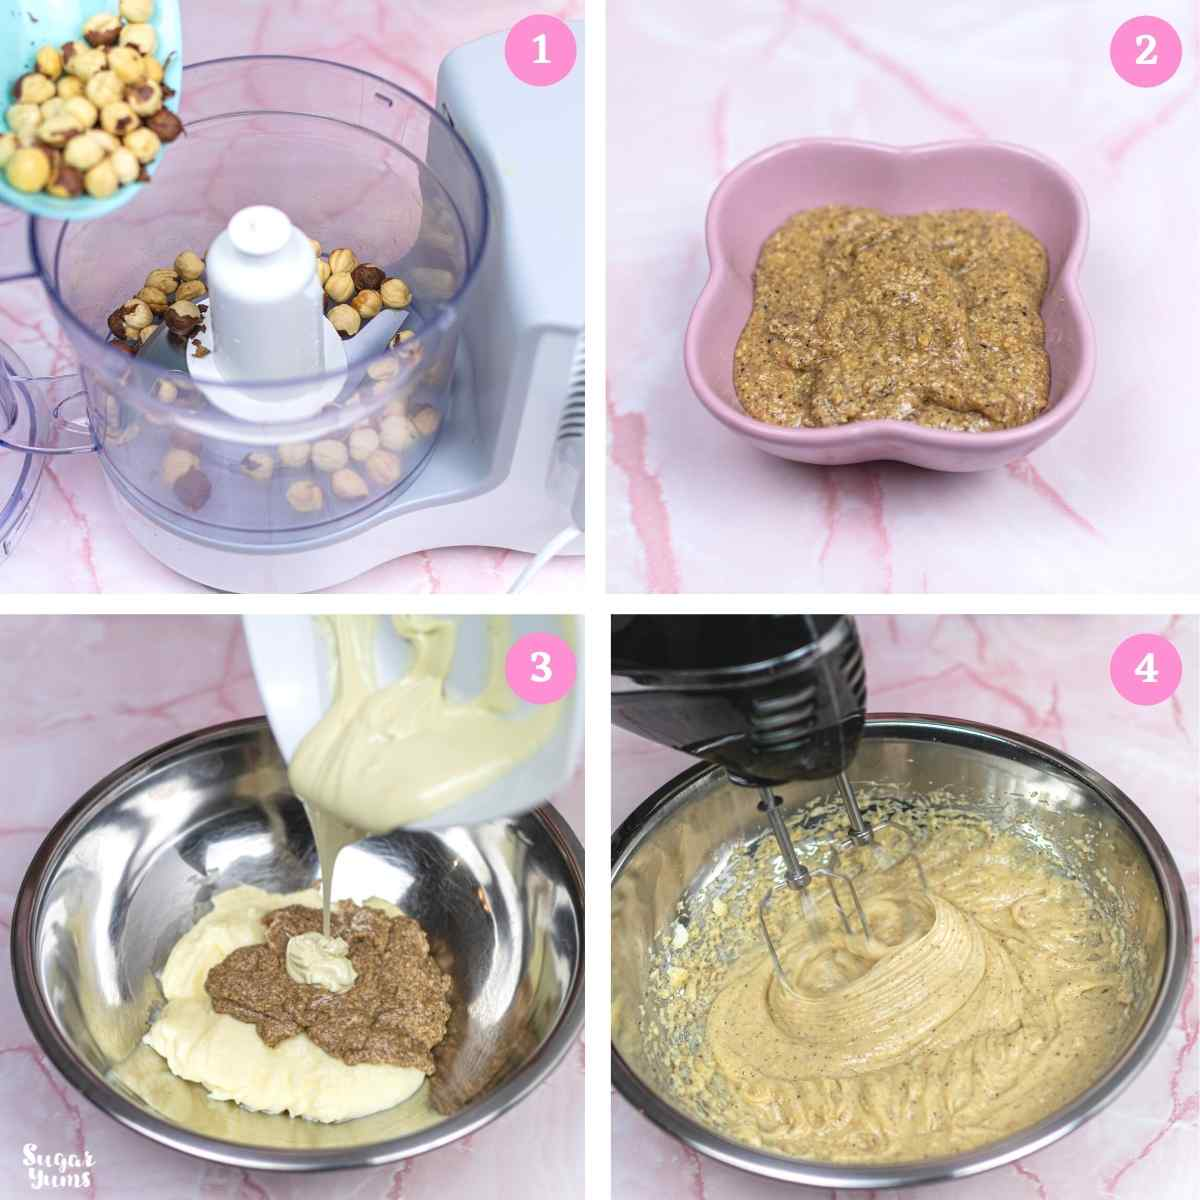 Collage of four images showing steps to making Kinder Bueno cream